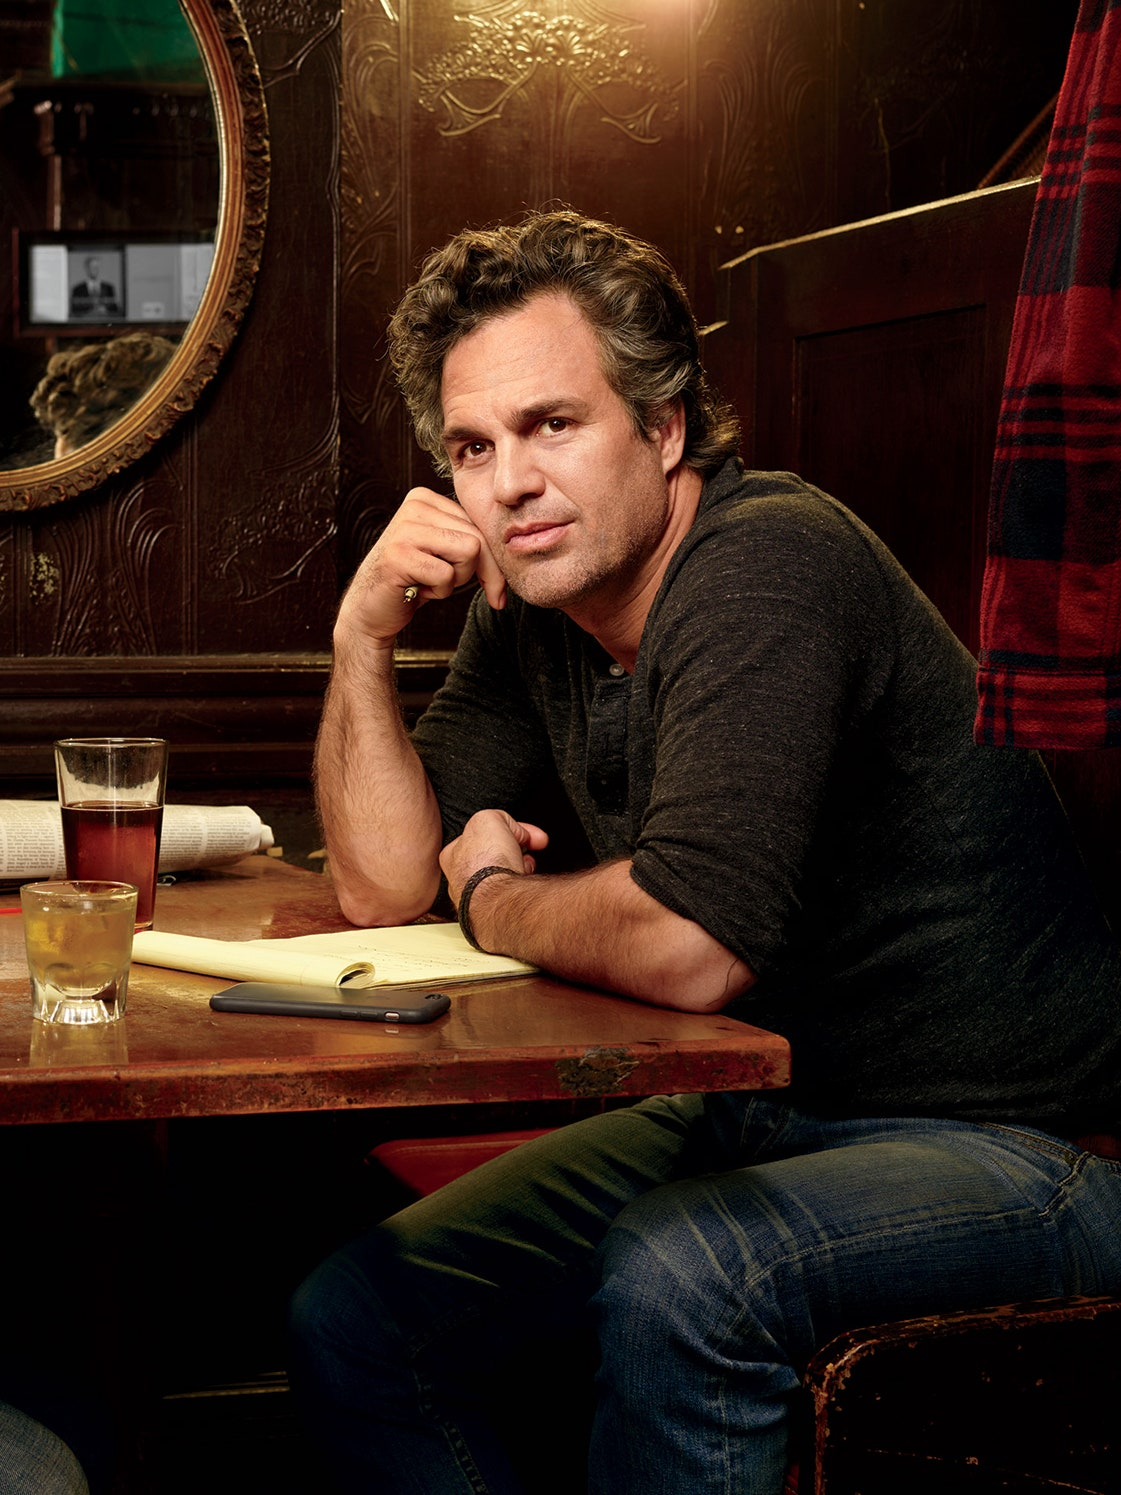 Mark Ruffalo Phone number, Email Id, Fanmail, Instagram, Tiktok, and Contact Details